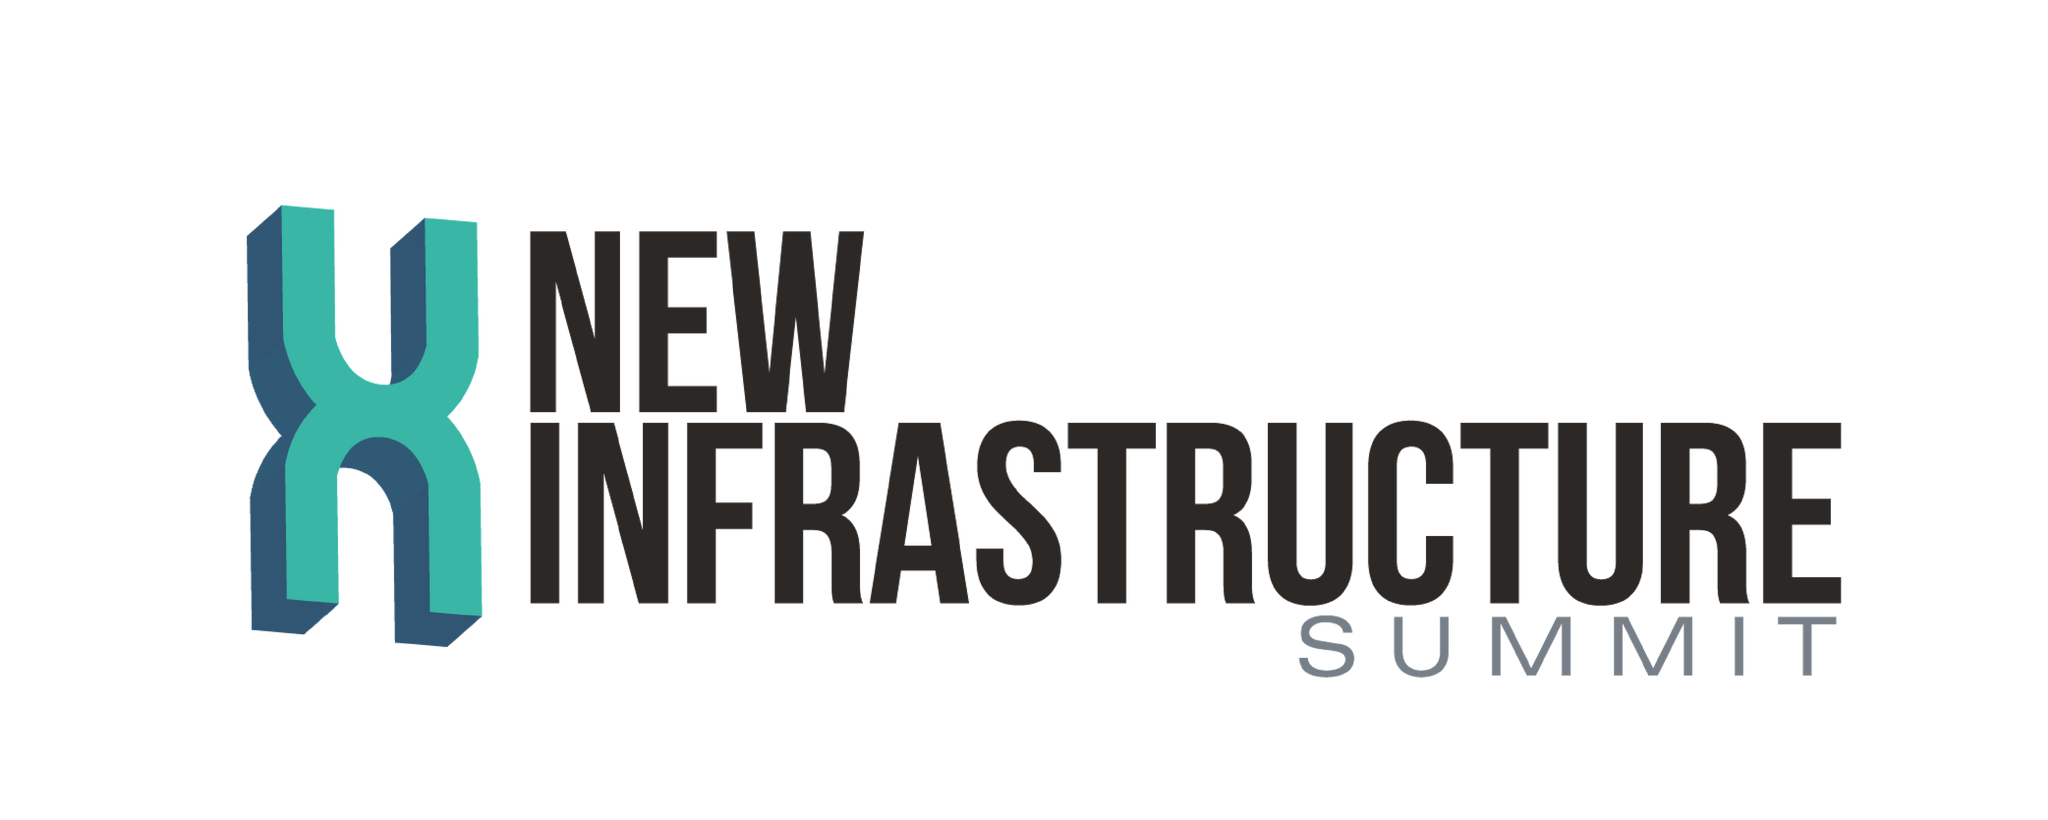 NEW INFRASTRUCTURE SUMMIT